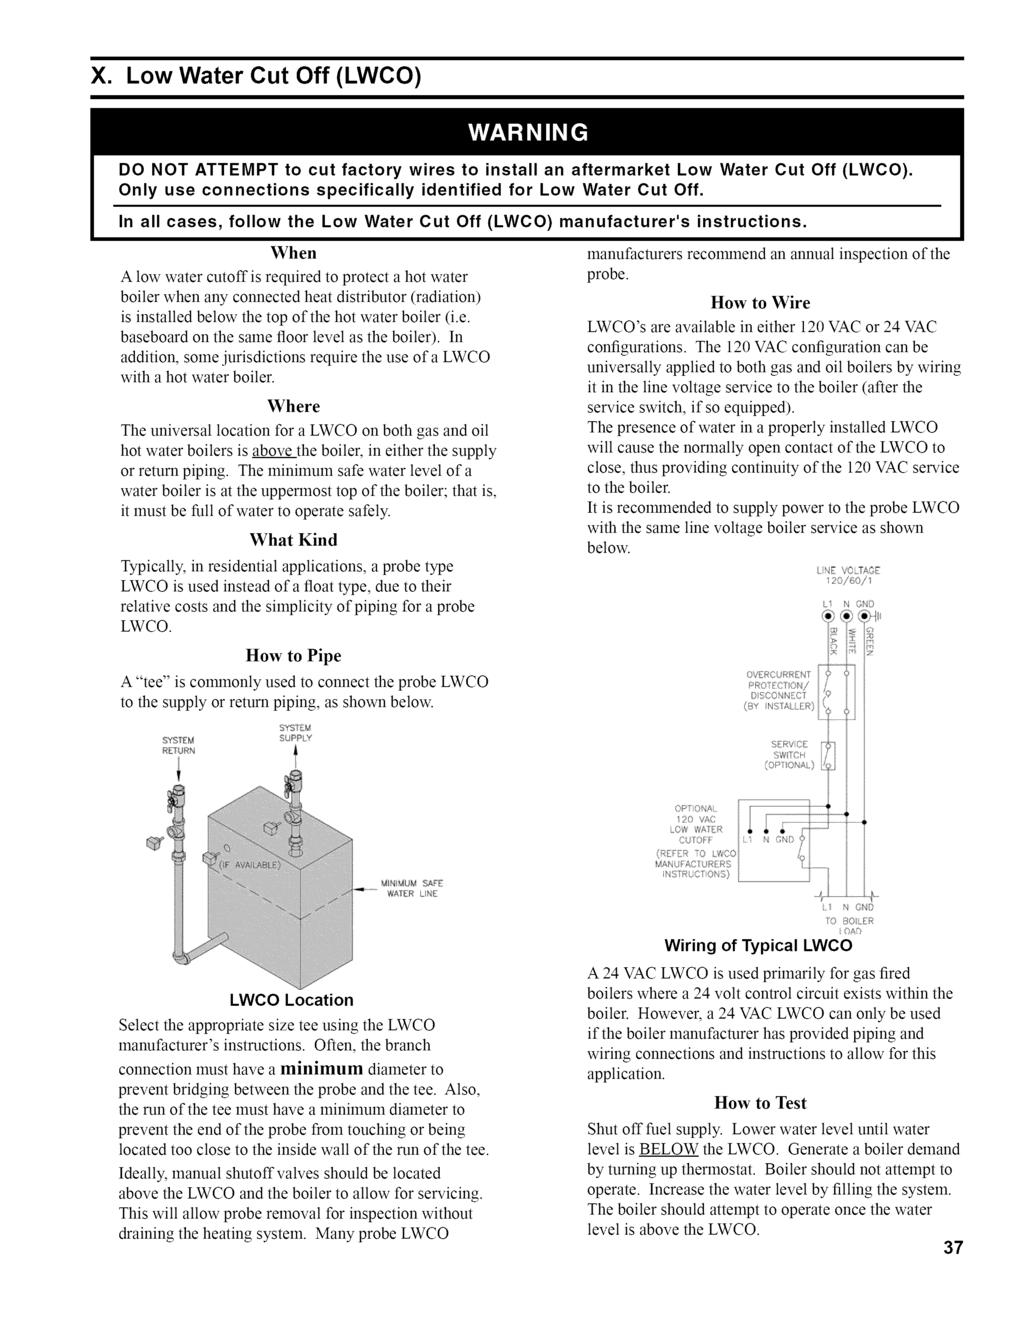 Installation Operating And Service Instructions Fr Rmseries Honeywell L7224 Wiring Diagram X Low Water Cut Off Lwco Do Not Attempt To Factory Wires